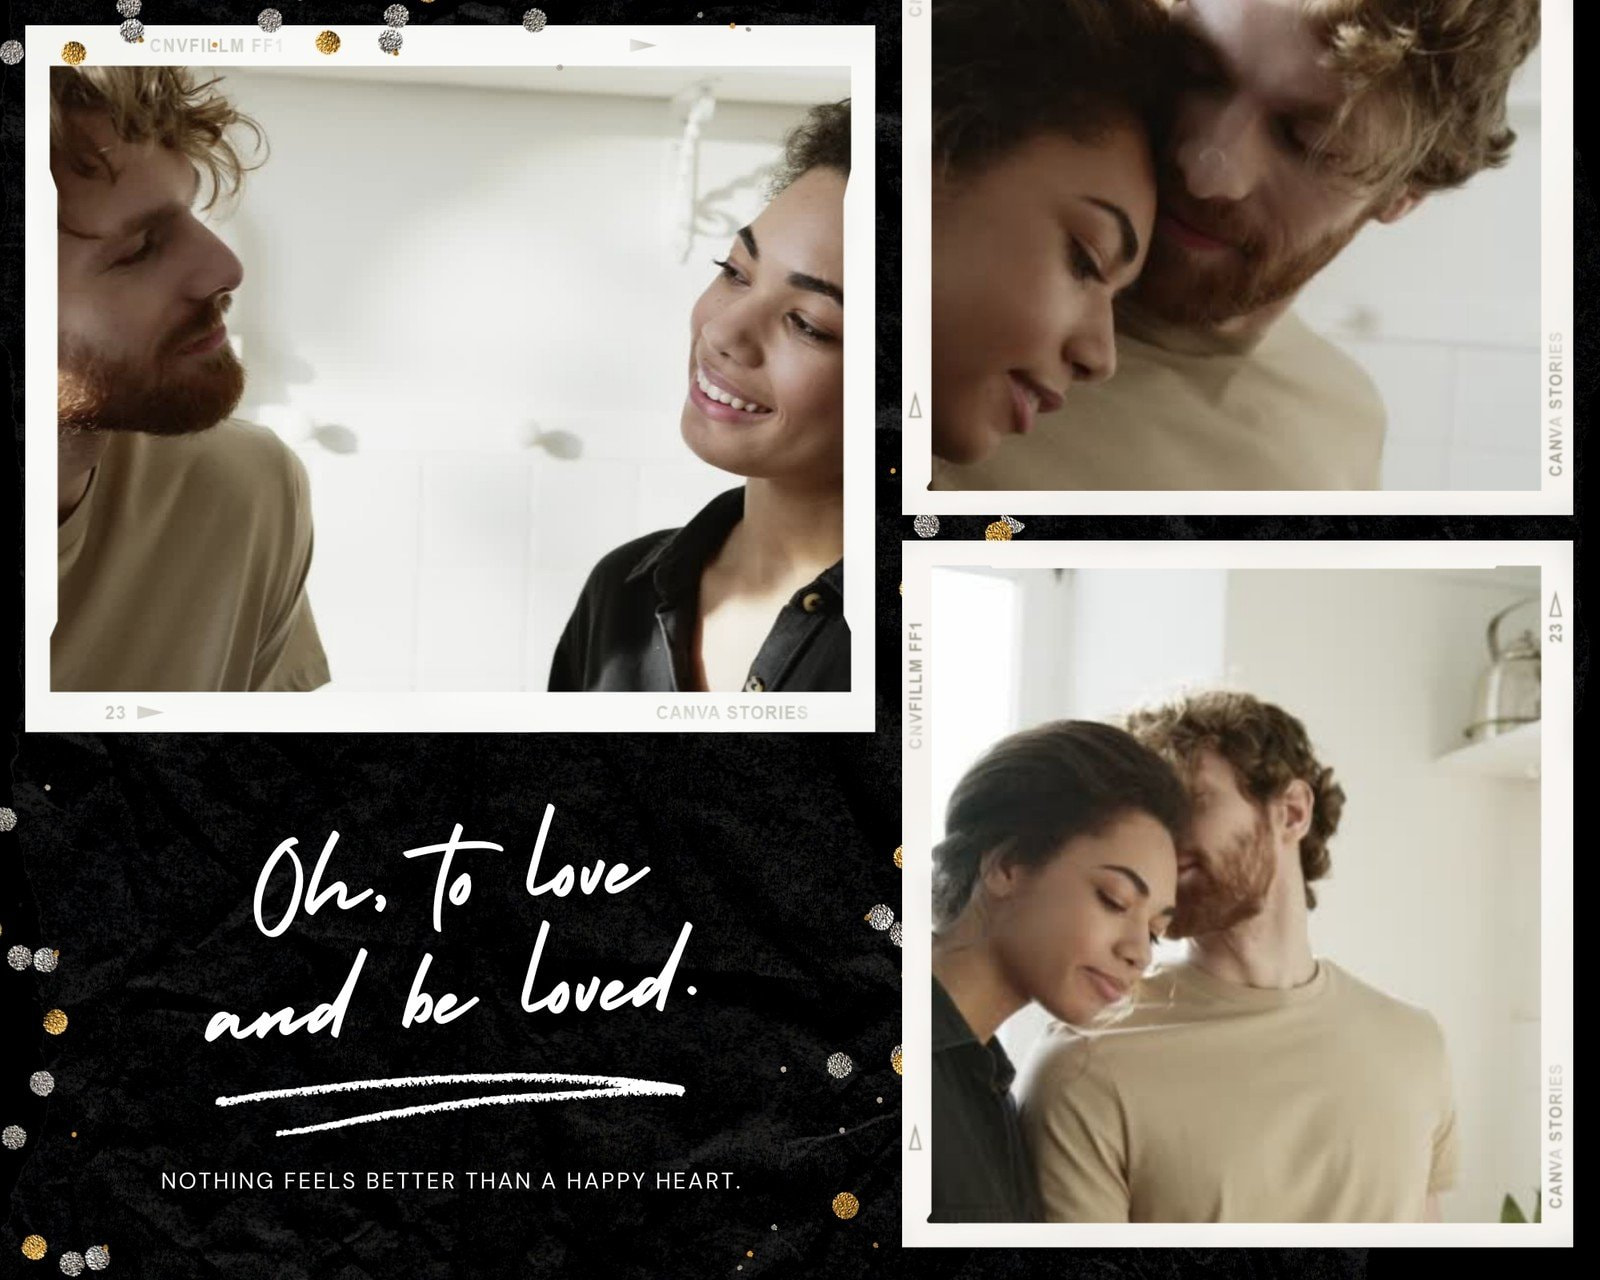 White and Black Video-centric Love Animated Photo Collage